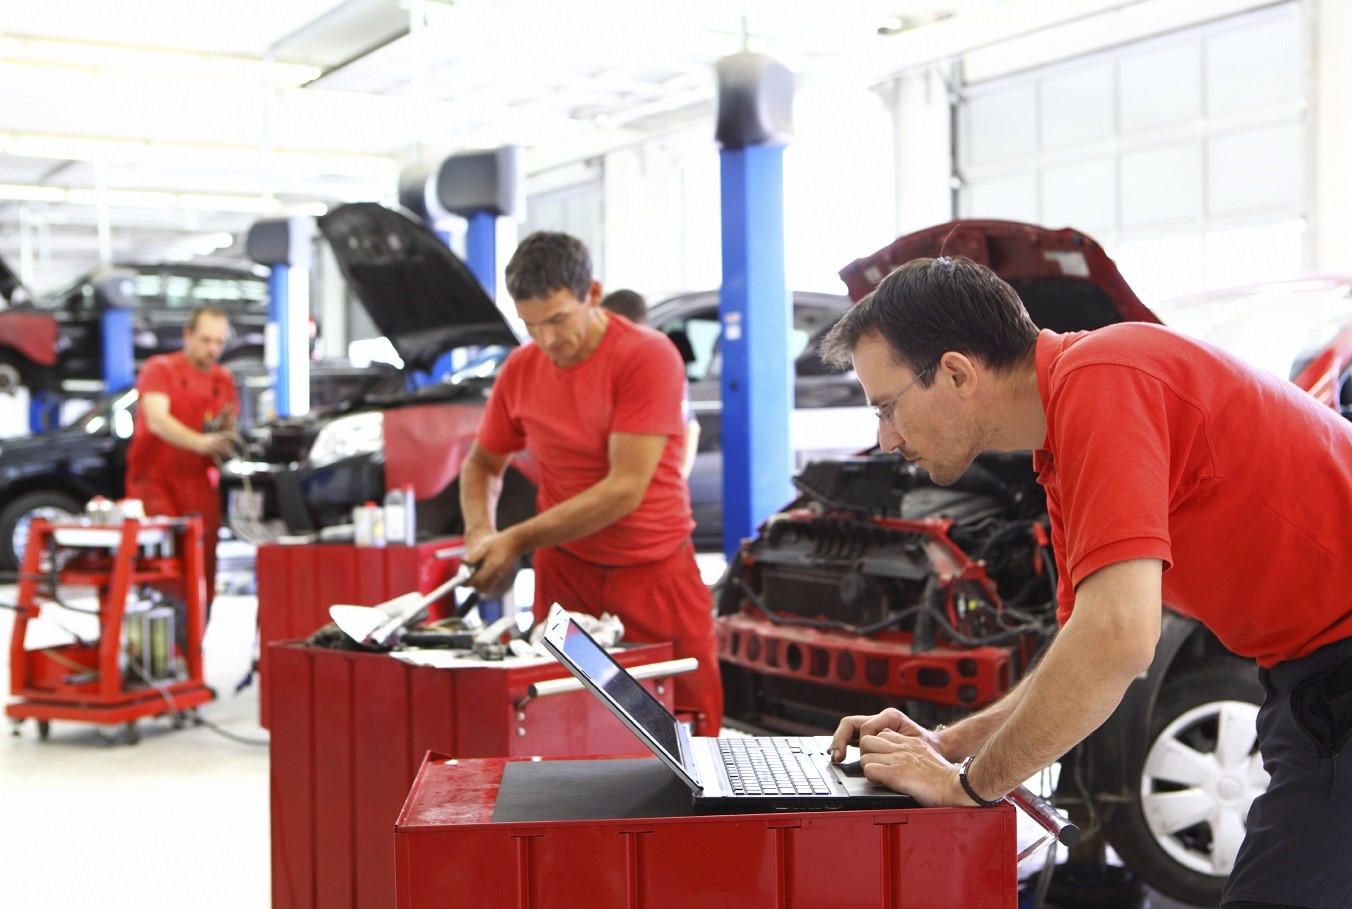 Our Service Technicians Will Take Good Care of Your Vehicle!